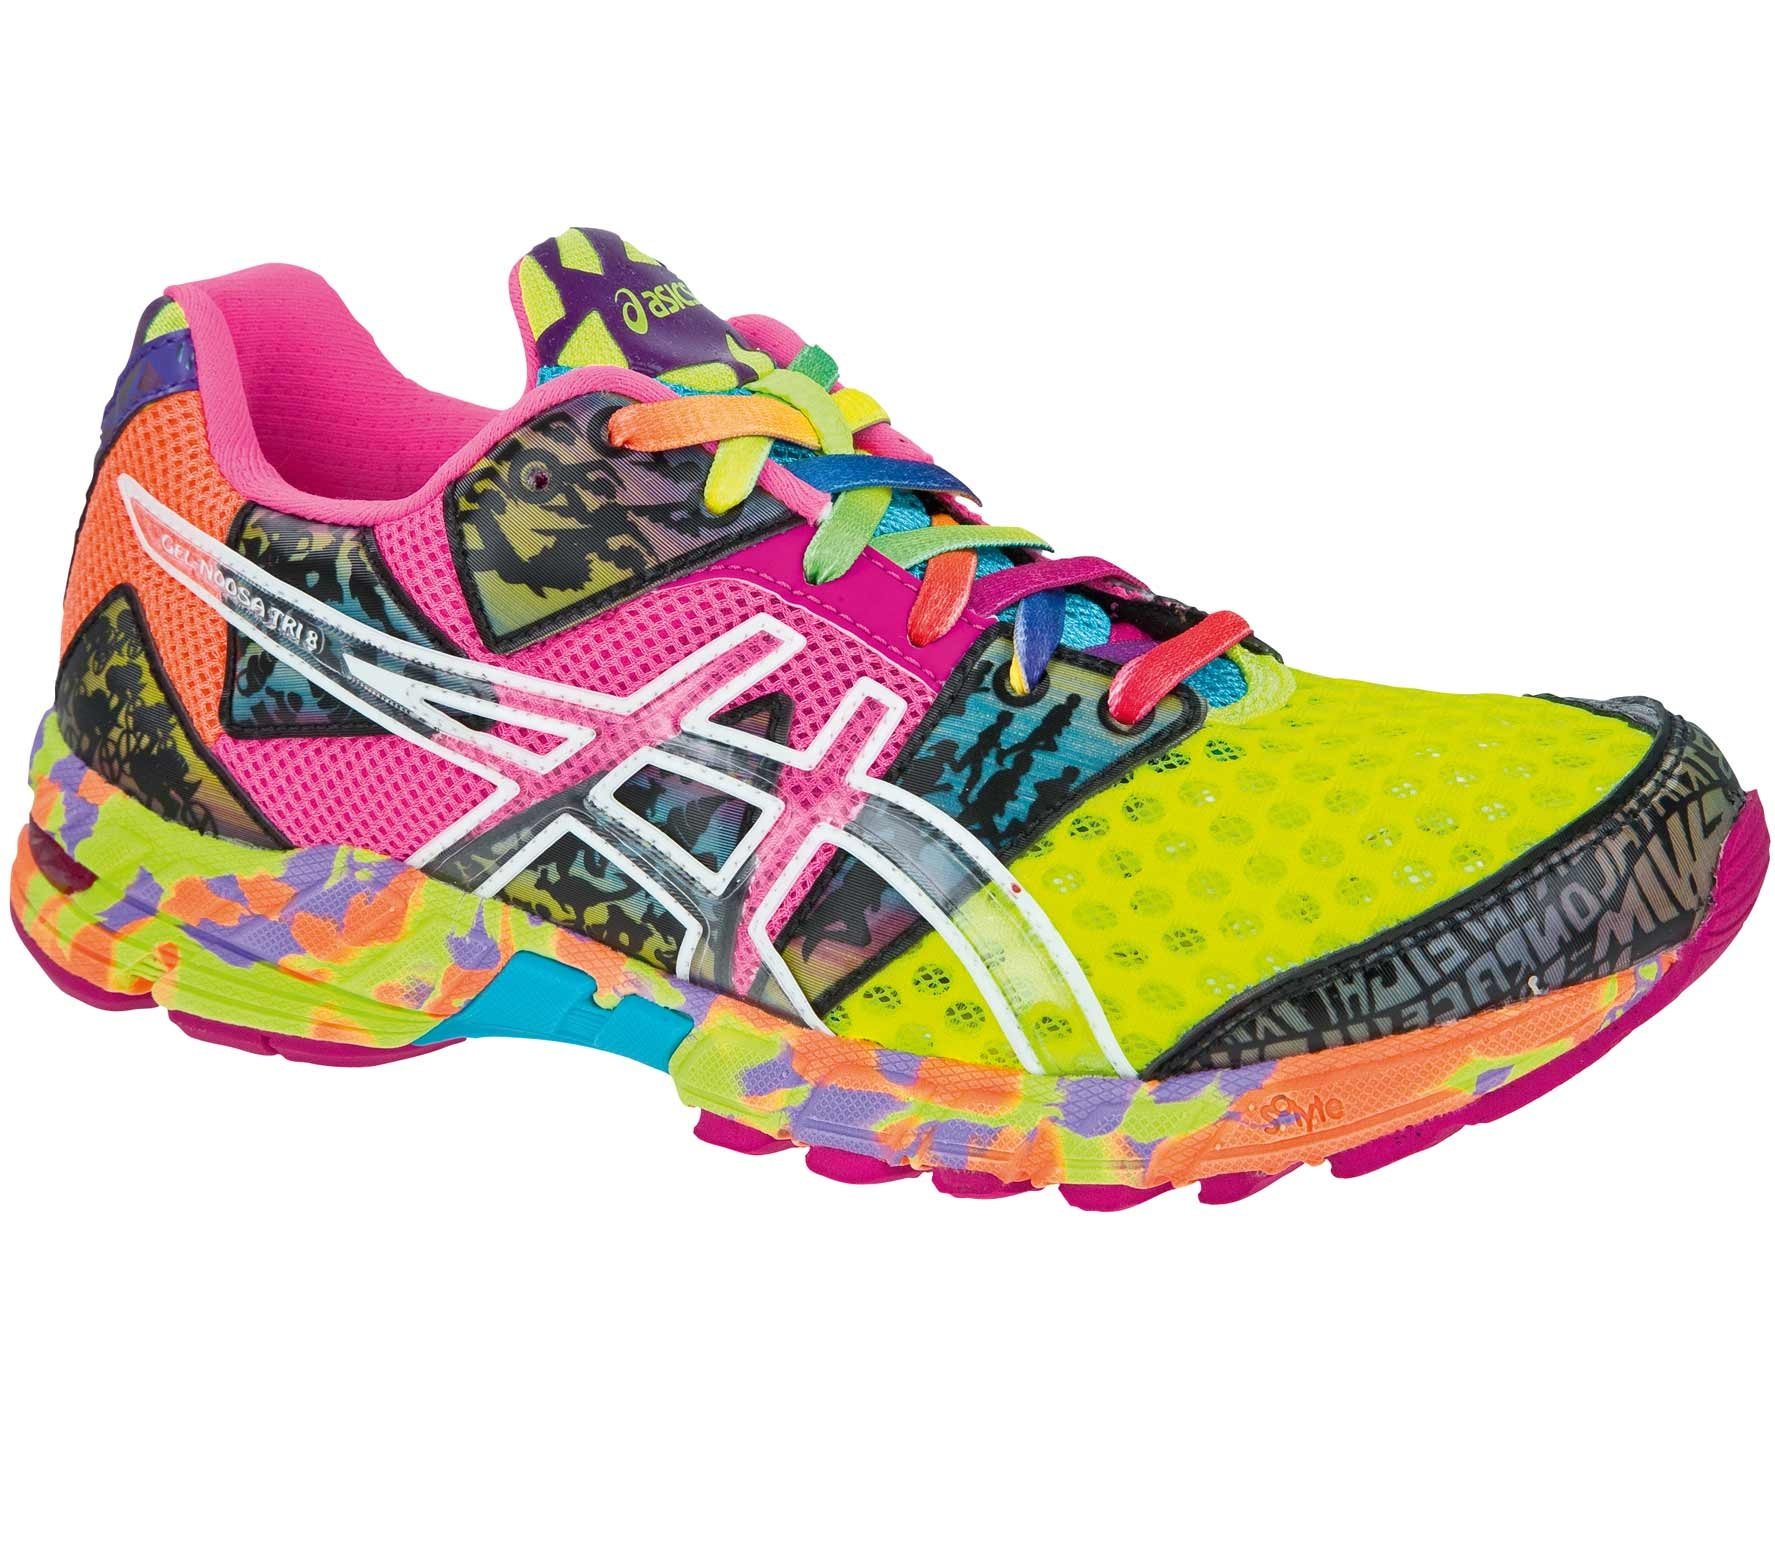 Asics - Running Shoes Women Gel-Noosa Tri 8 - FS13